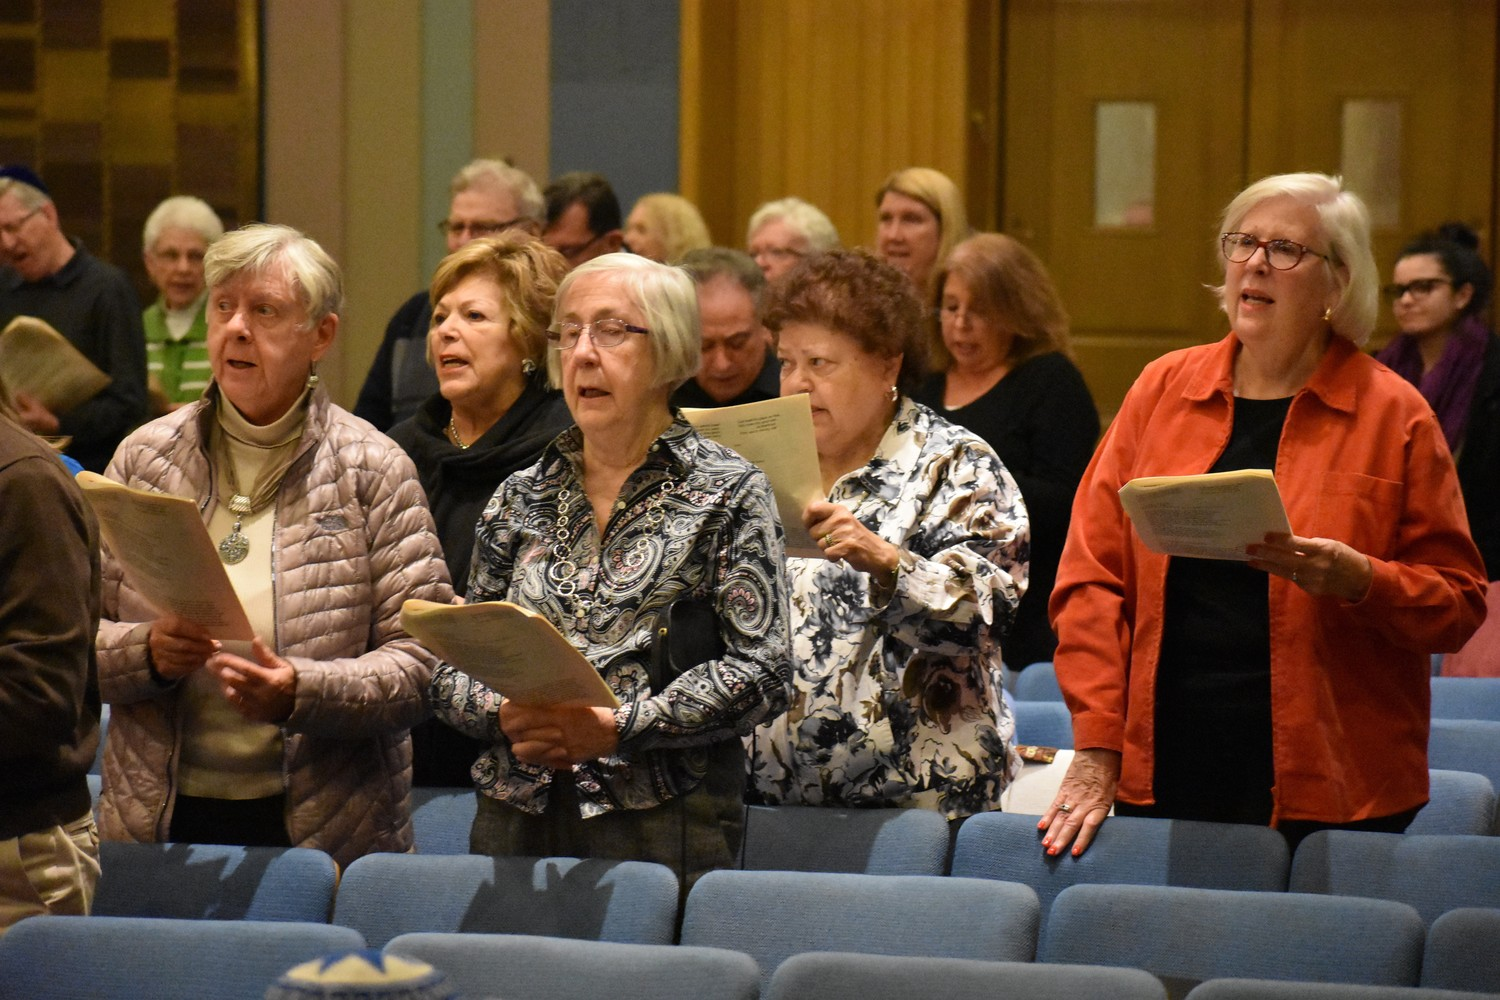 Attendees of the service belted out songs of thanks.